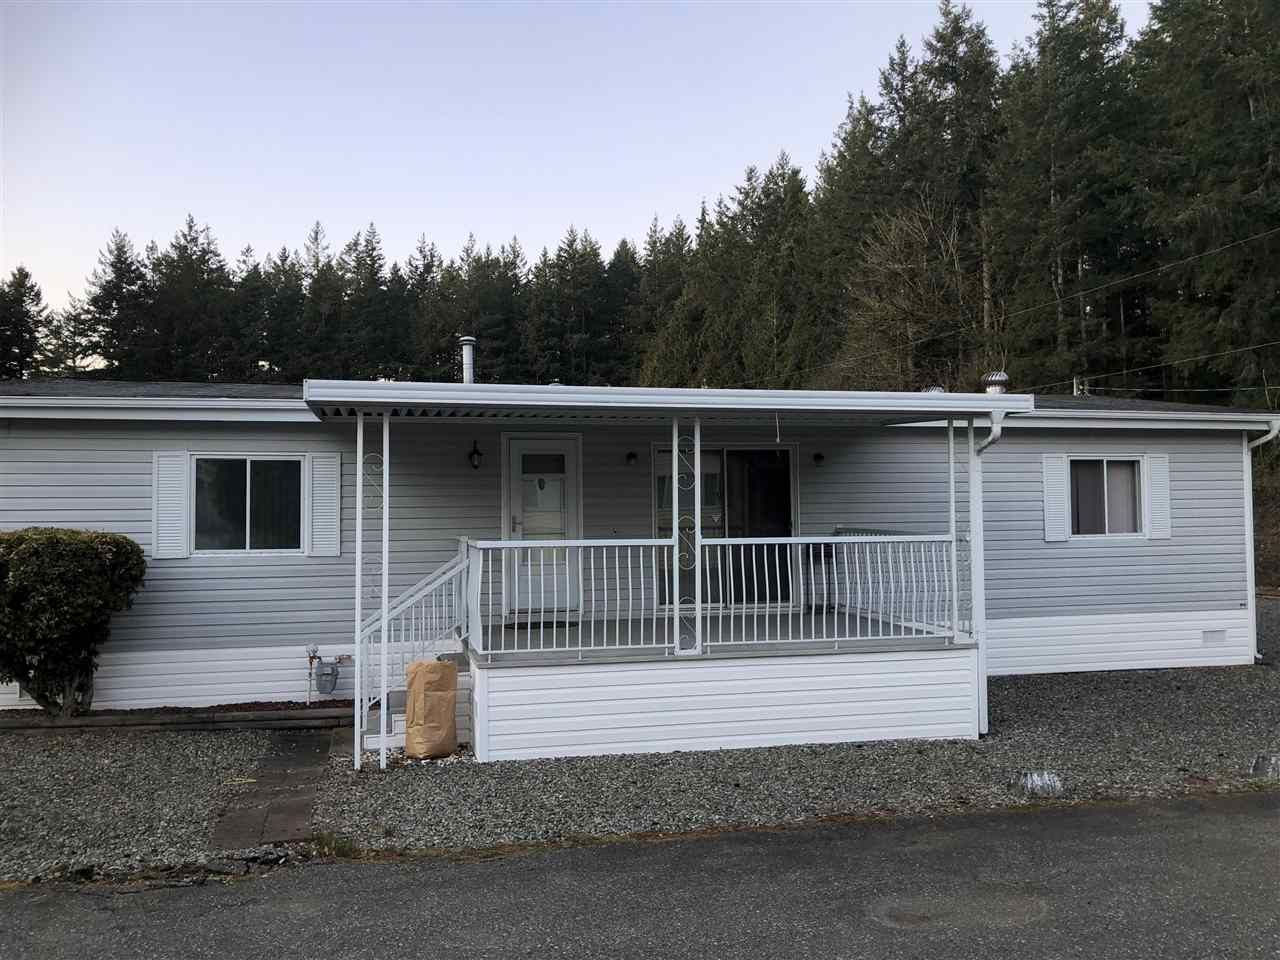 Main Photo: 238 20071 24 Avenue in Langley: Brookswood Langley Manufactured Home for sale : MLS®# R2500766